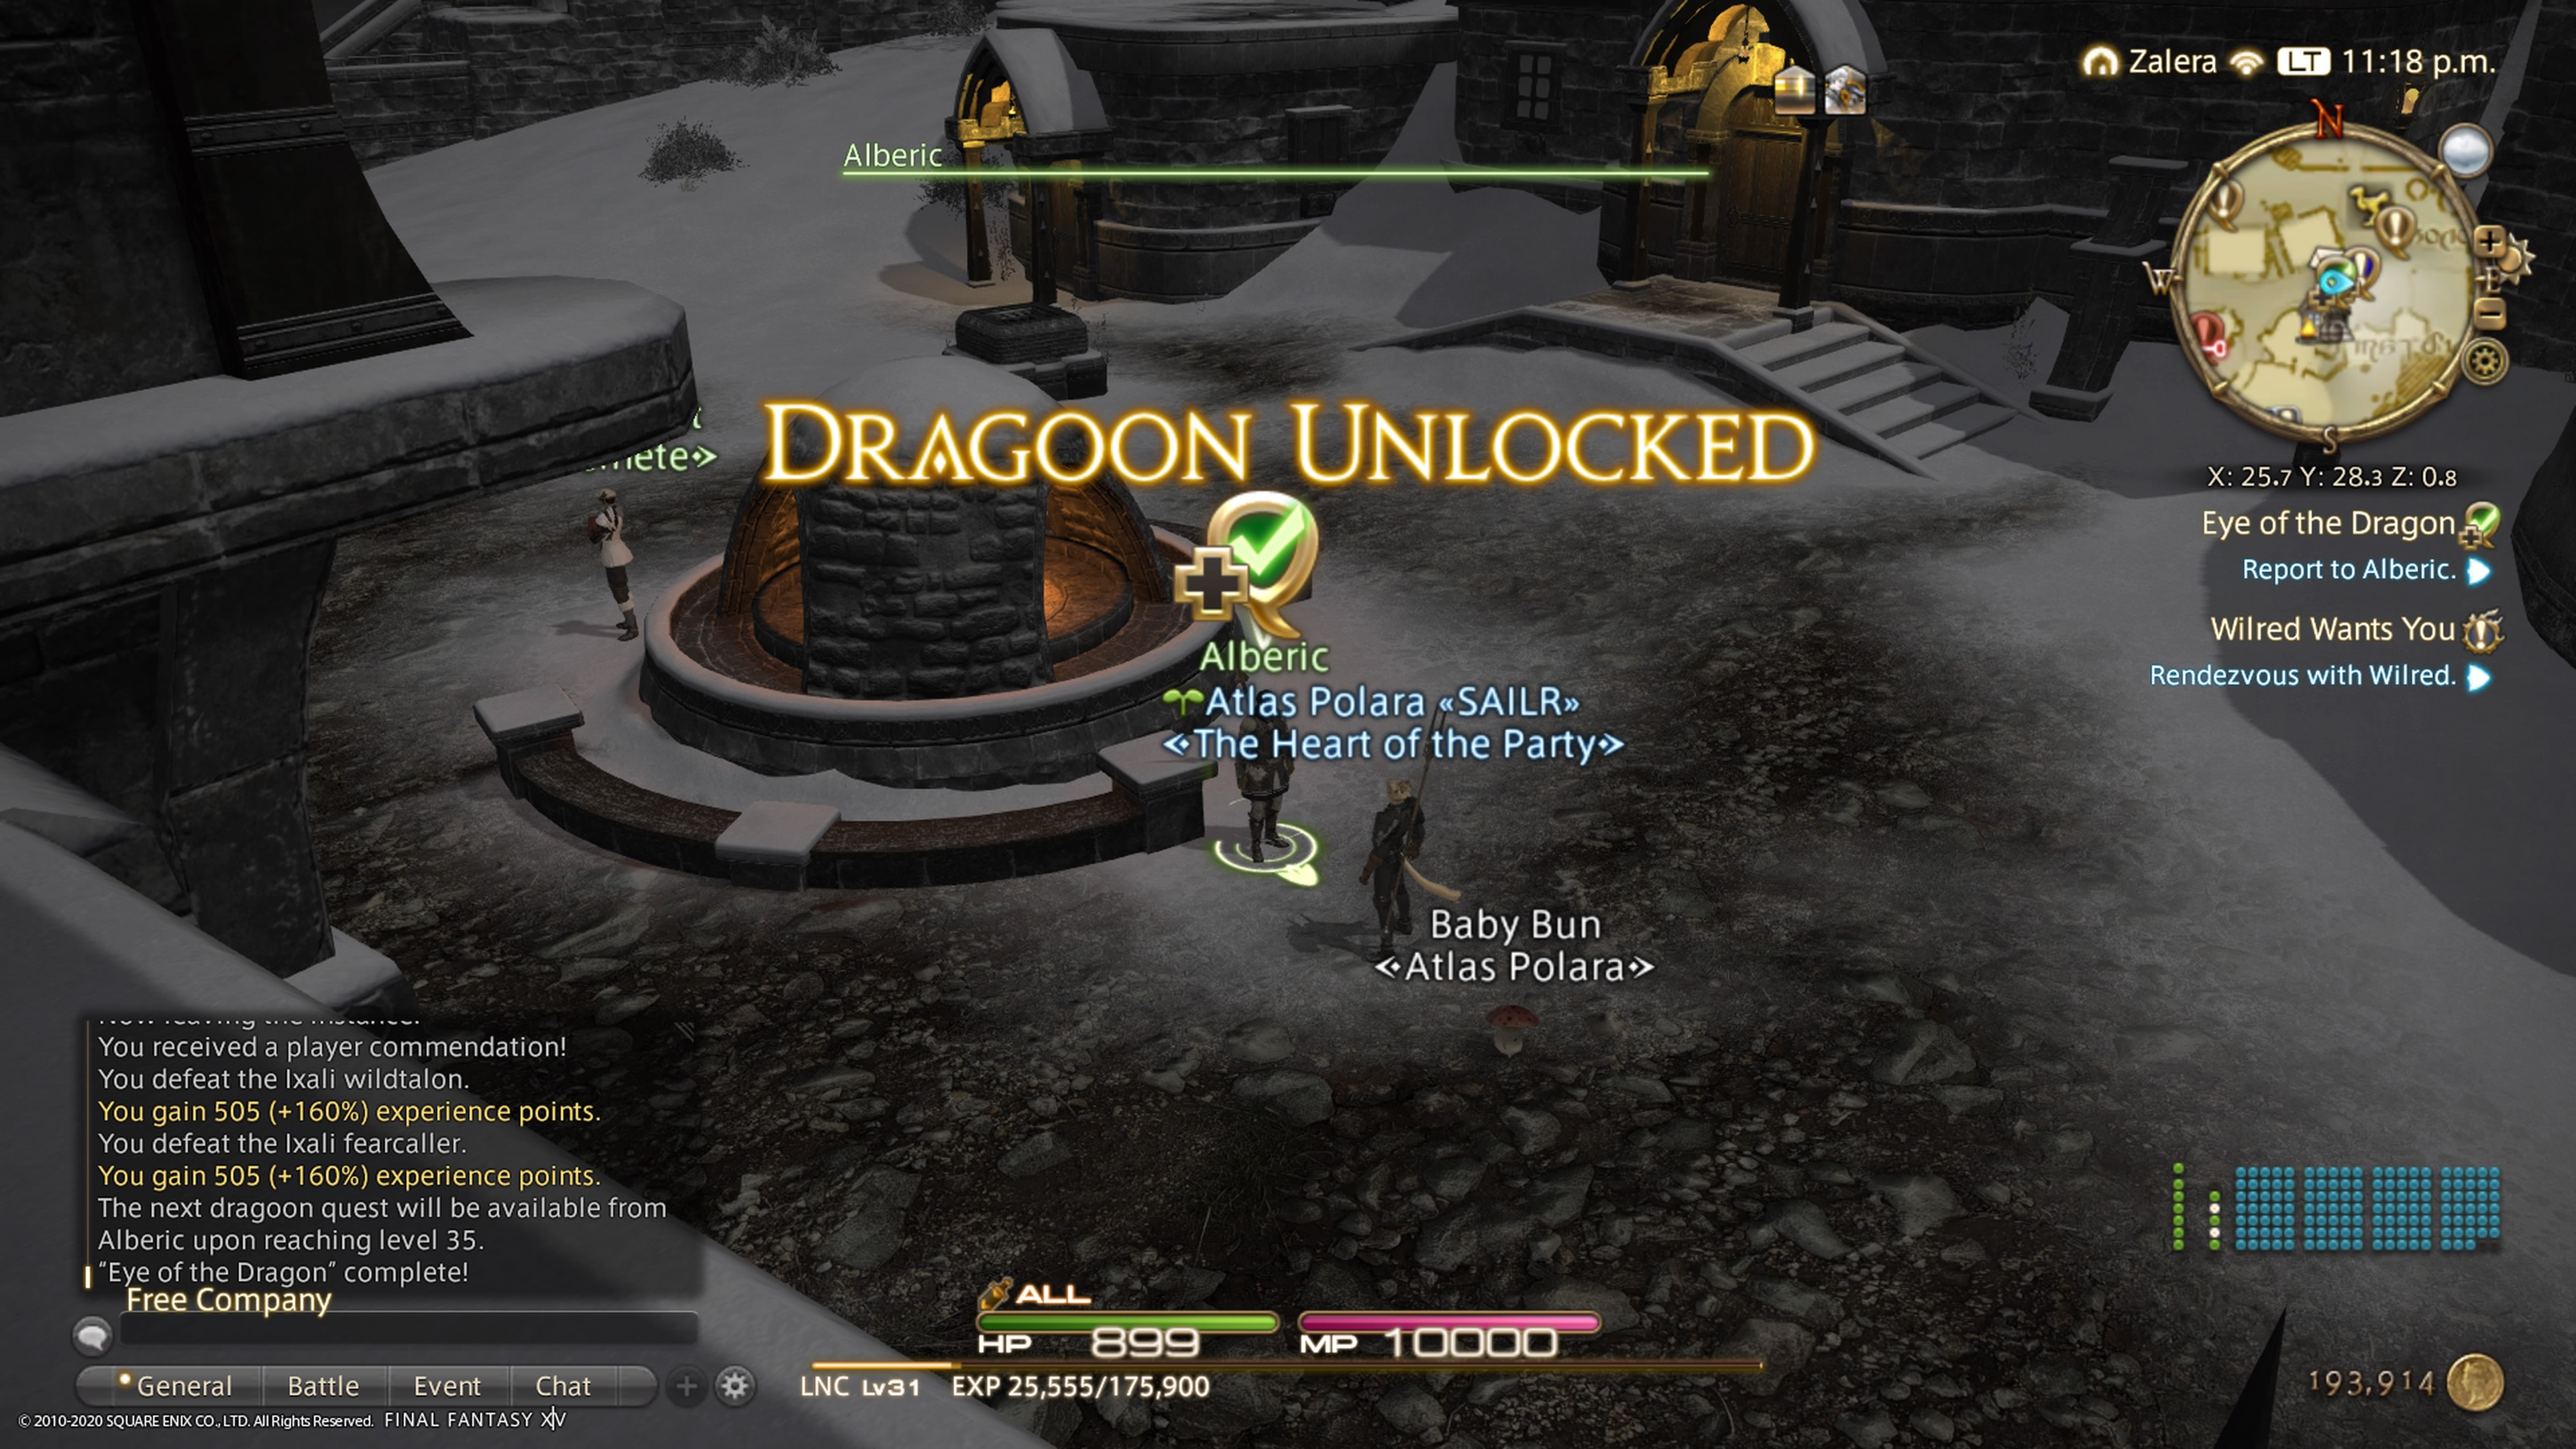 My FFXIV screen, the large words DRAGOON UNLOCKED in gold letters in the middle of the screen.